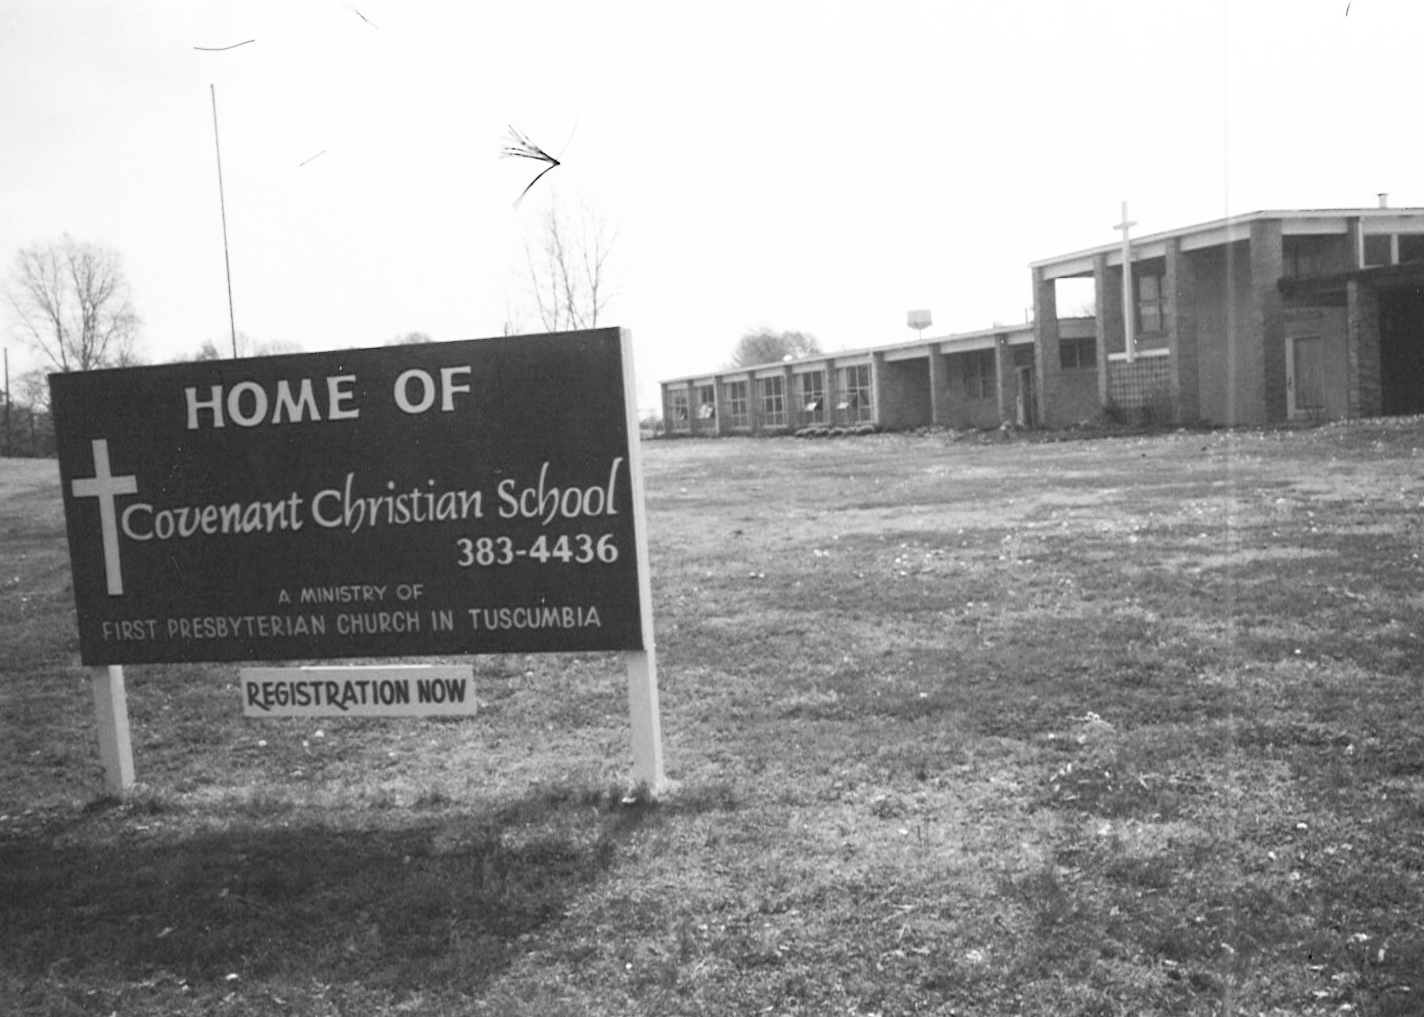 Early days of Covenant Christian